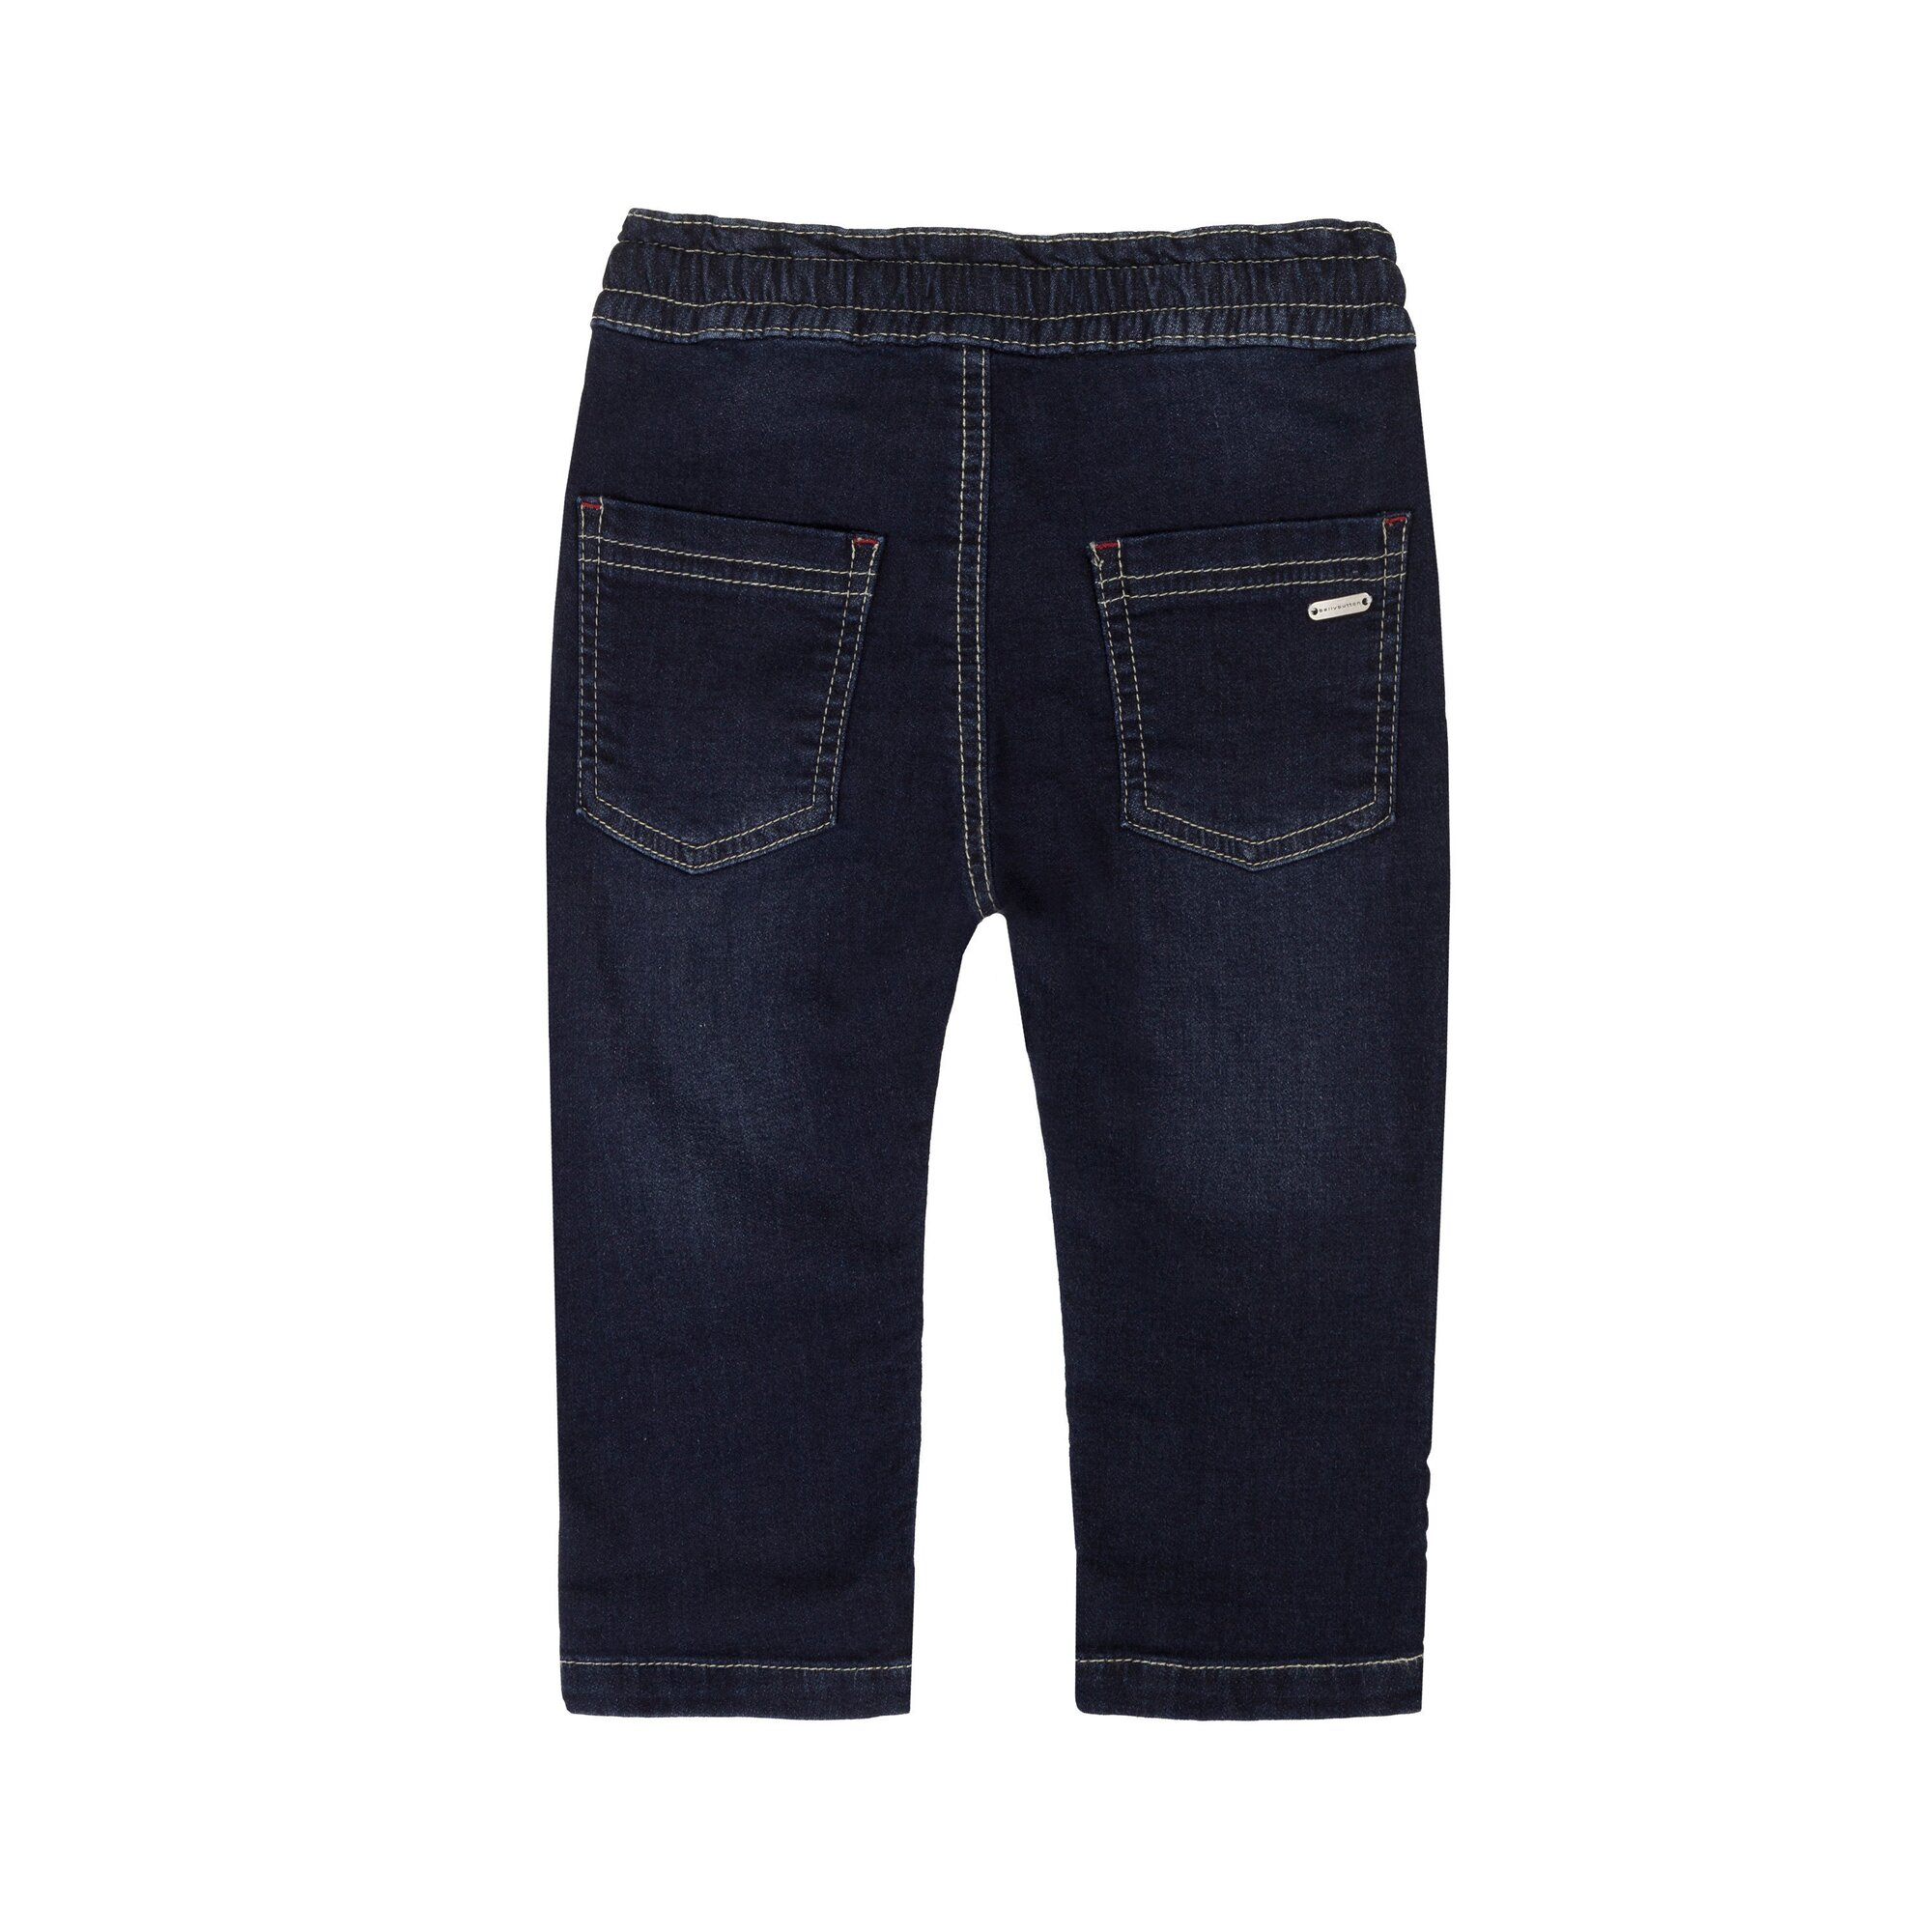 bellybutton-jeans-boys-coole-waschung-slim